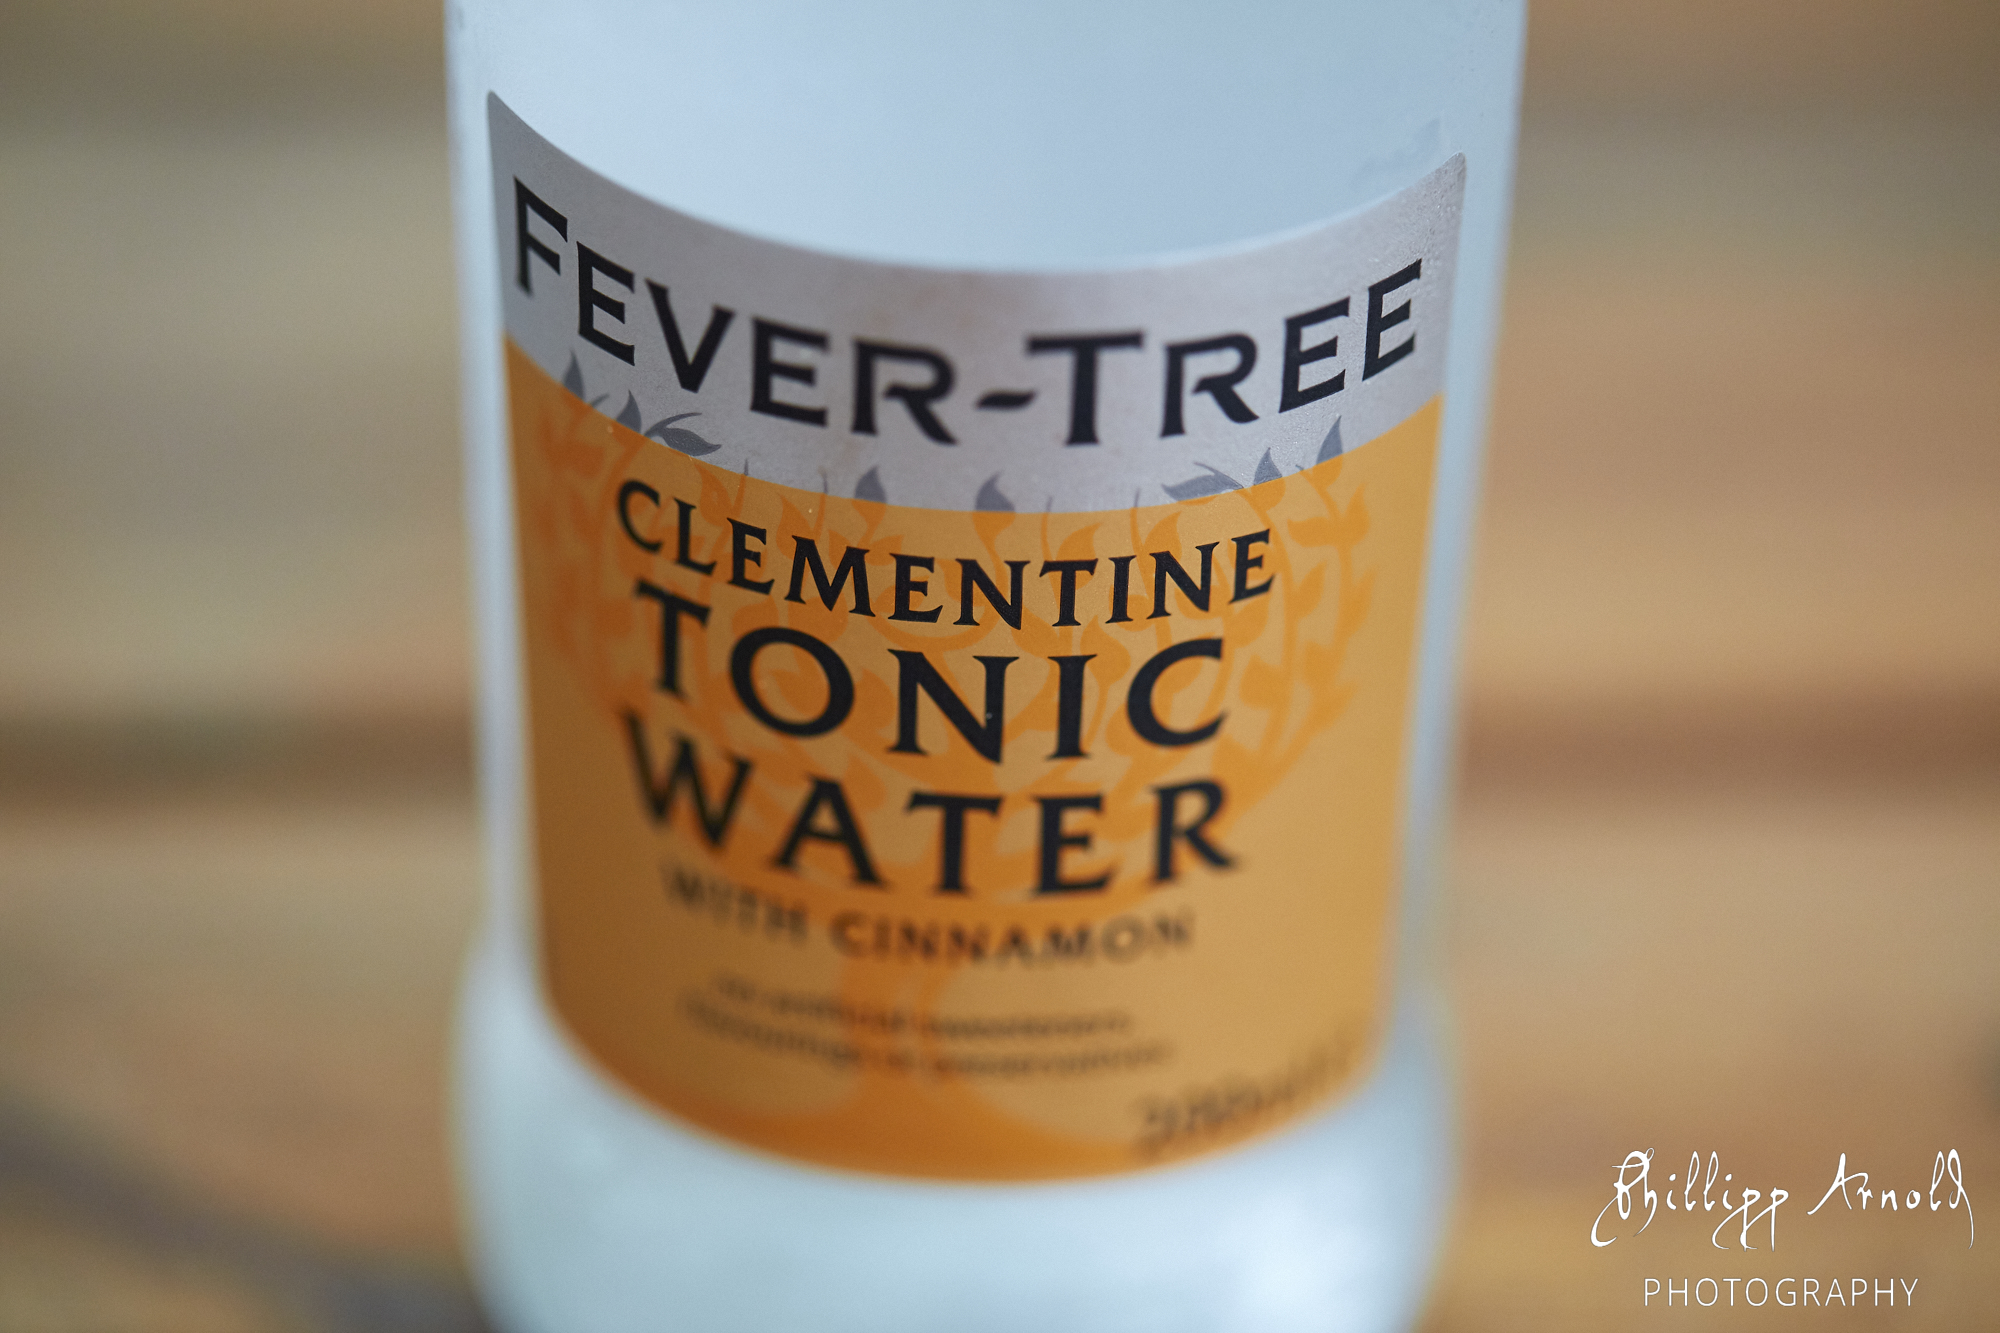 Tonic Water - FEVER-TREE Clementine